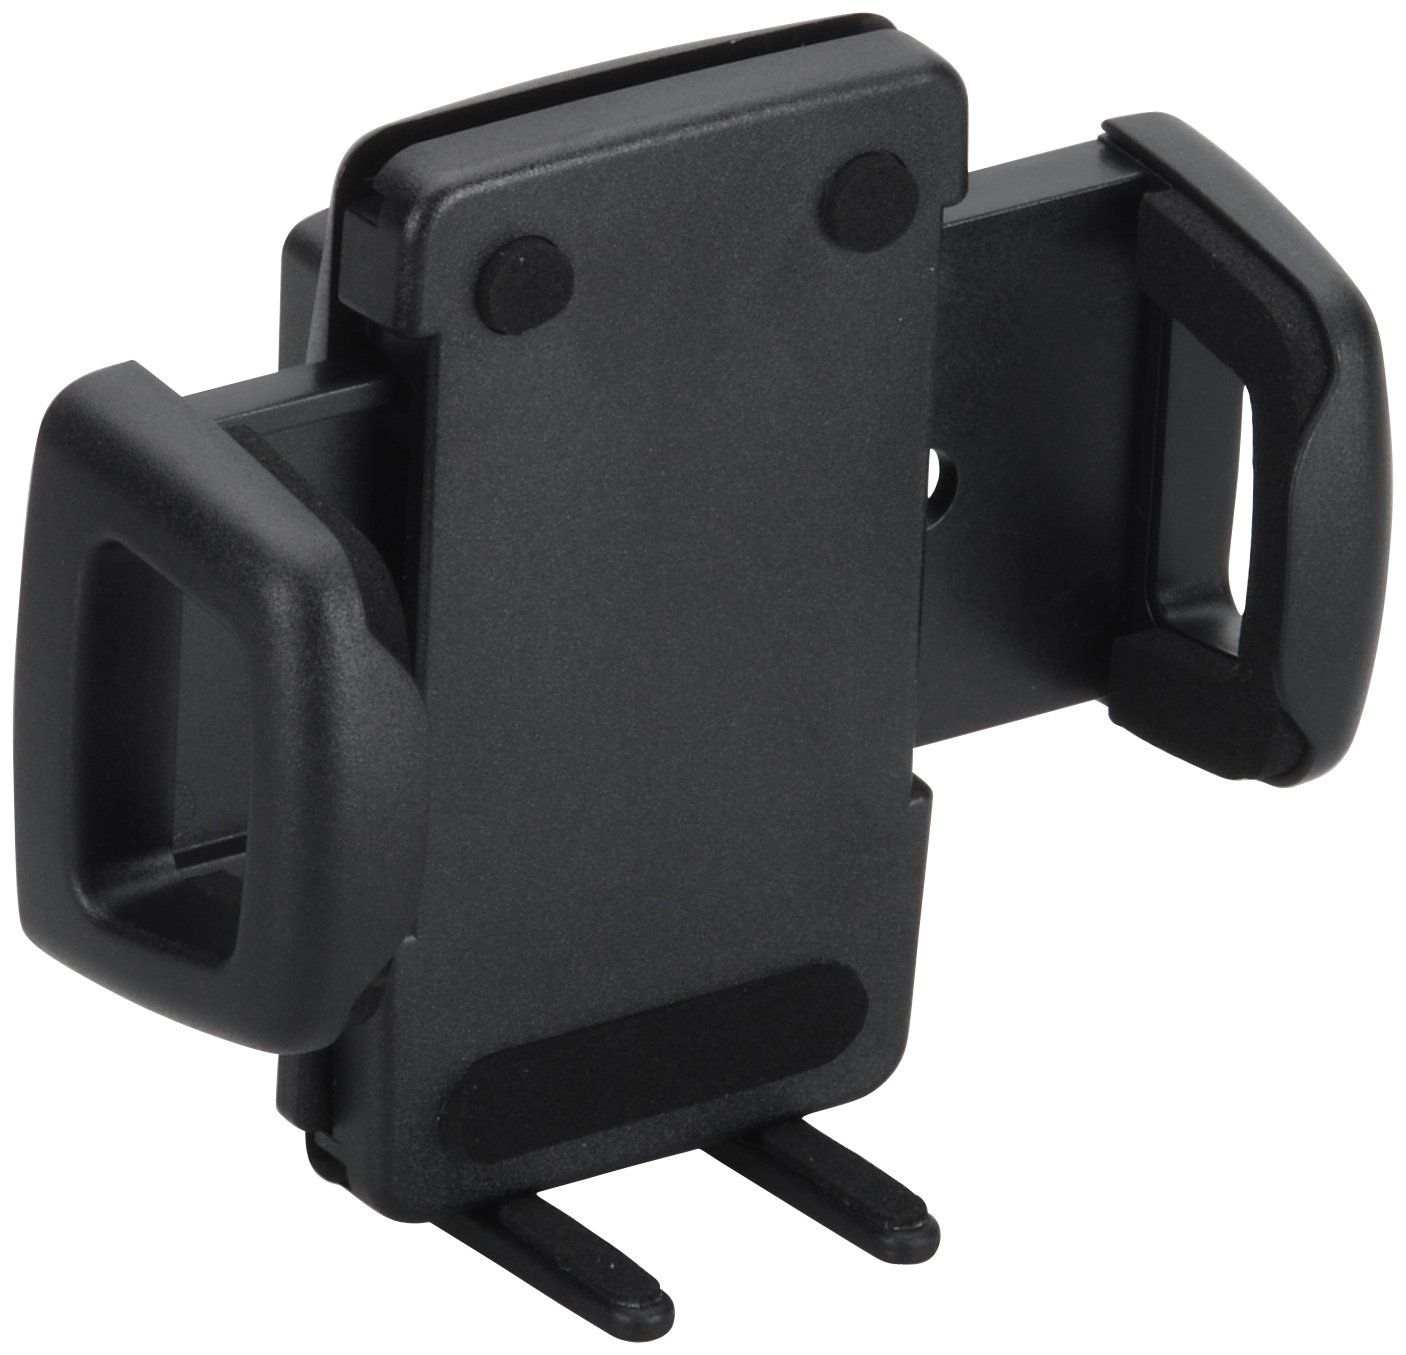 Mini Phone Gripper 6 Herbert Richter 500 102 11 1.8//3 Smartphone Holder